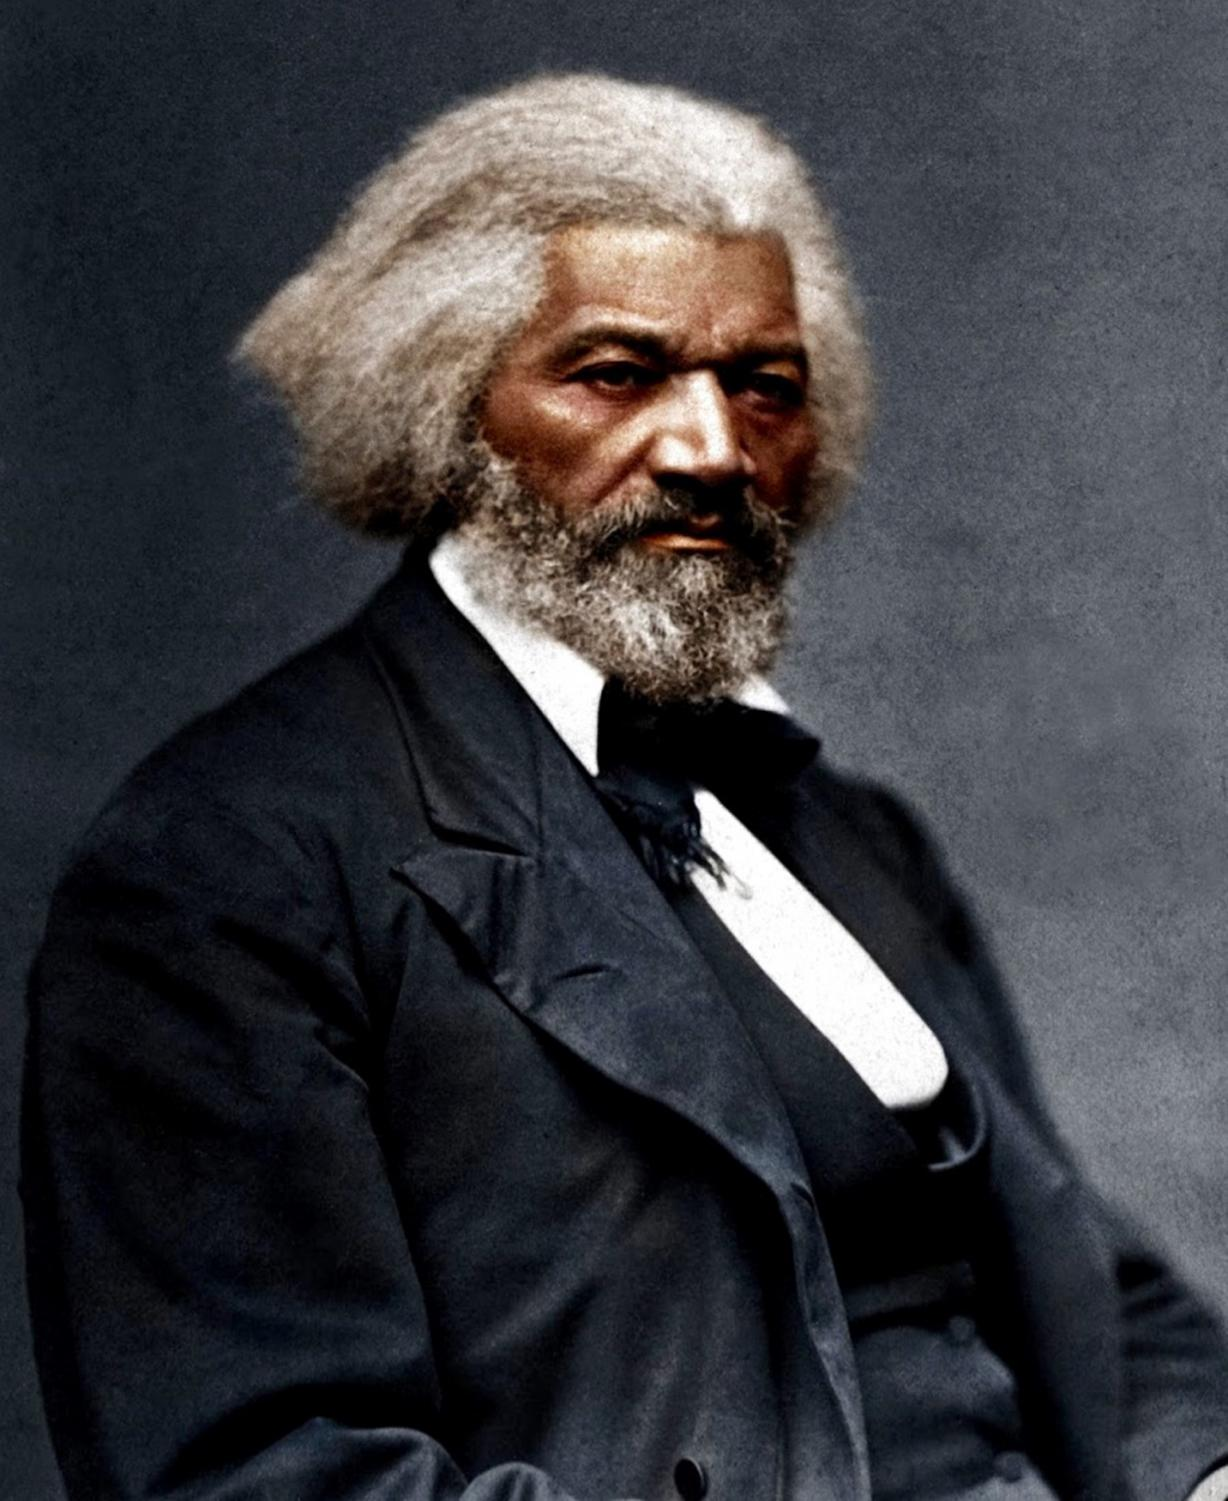 frederick douglass - photo #12